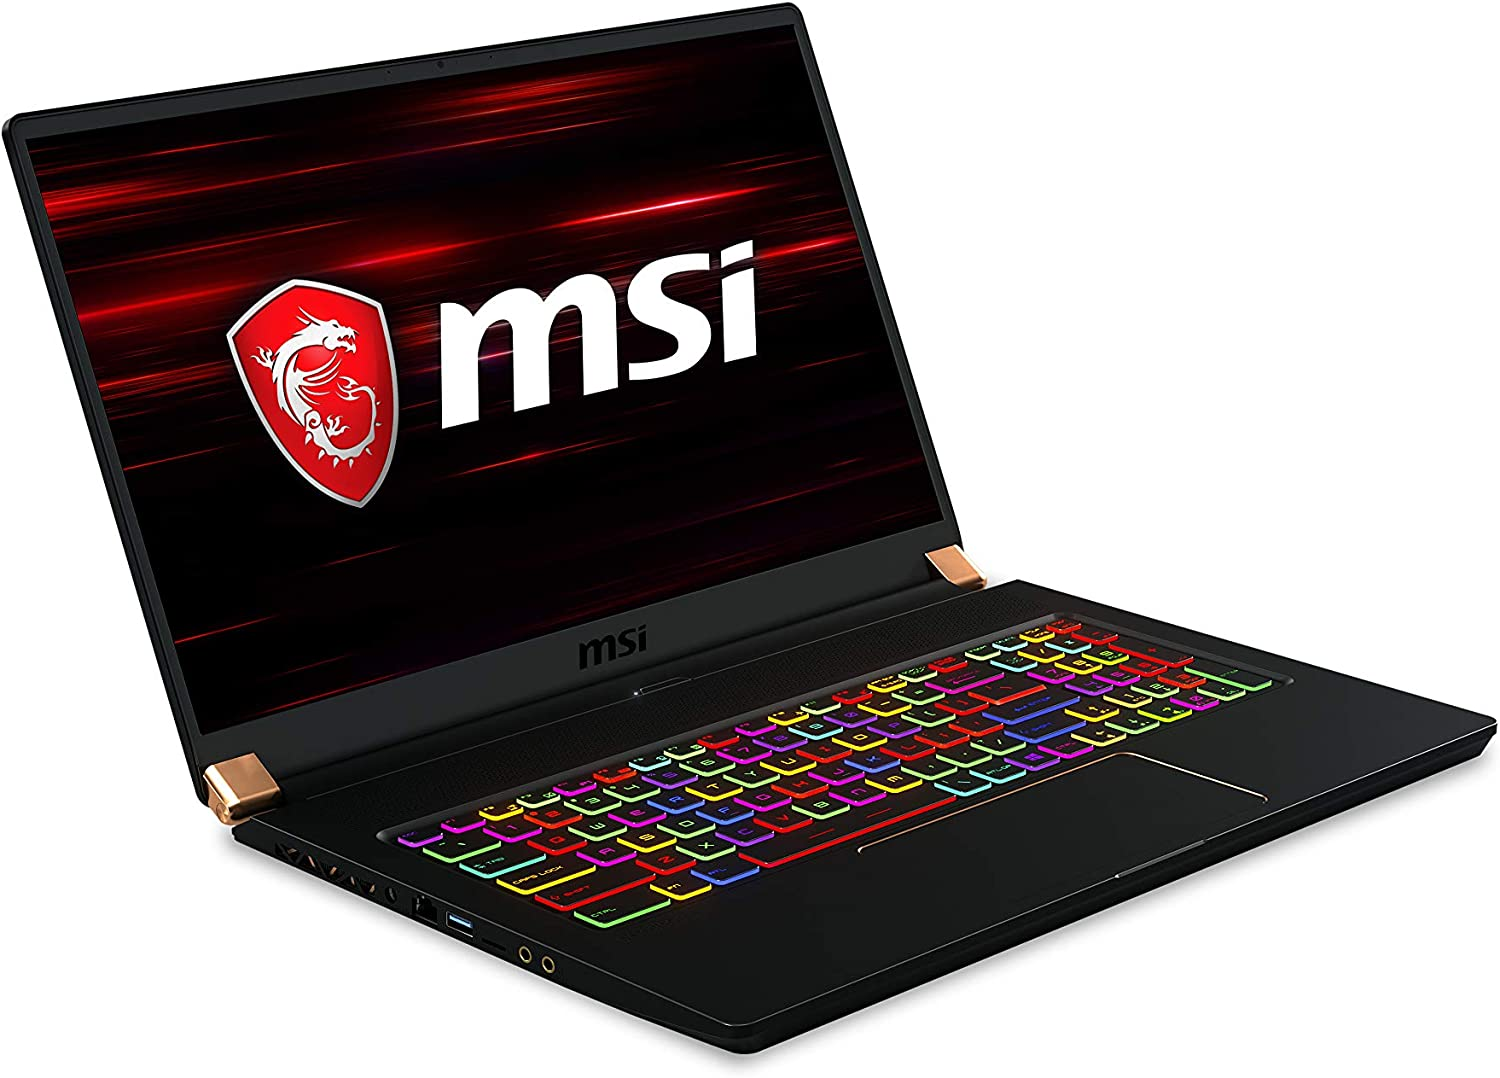 "MSI GS75 Stealth 10SF-036 17.3"" 240Hz Ultra Thin and Light Gaming Laptop Intel Core i7-10750H RTX 2070 32GB 512GB NVMe SSD Win10PRO VR Ready"